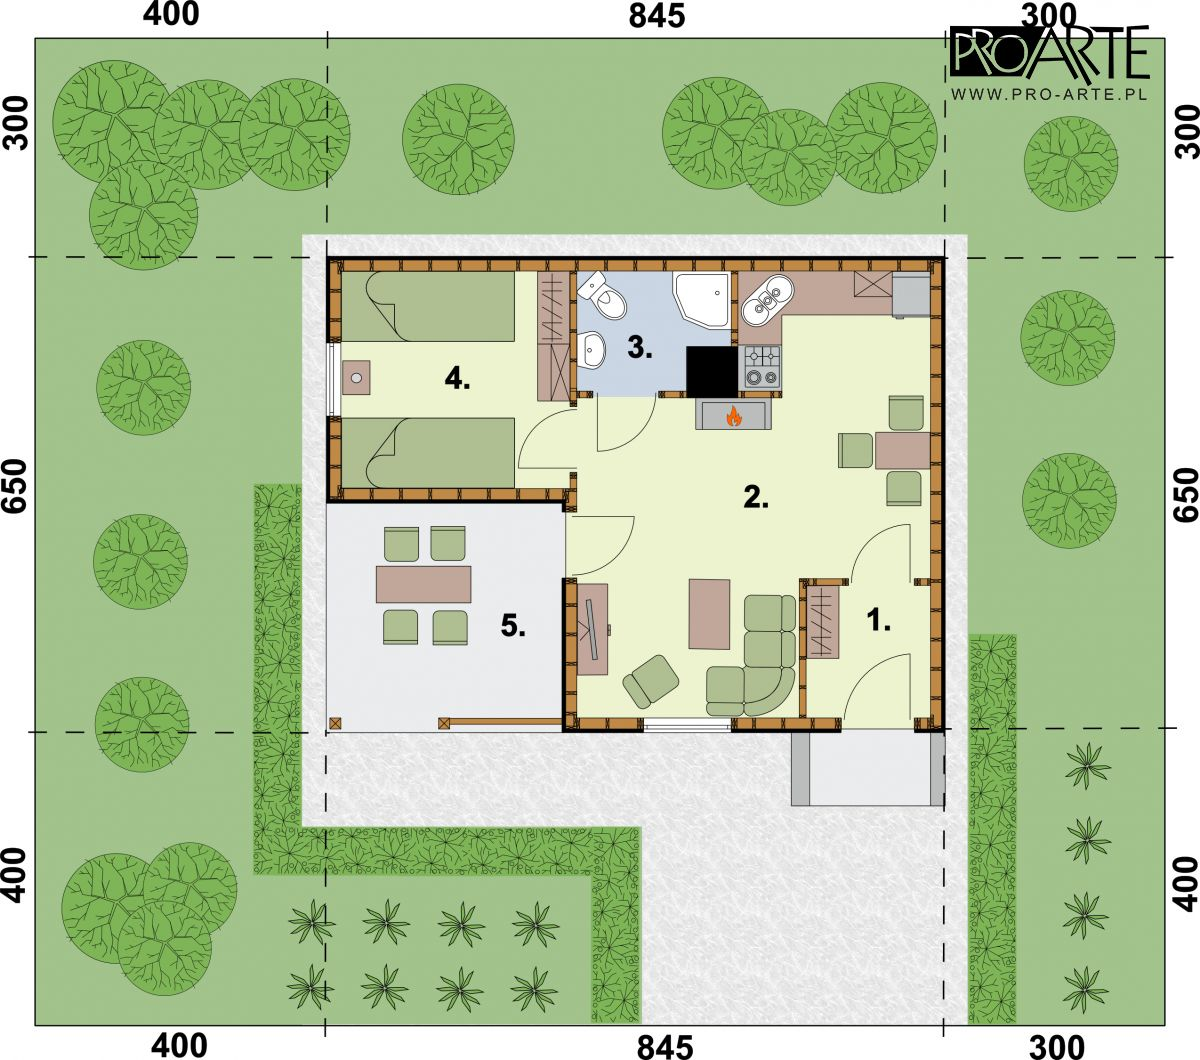 This small house plans group composts of floor plans of less than 49 square meters. While constructing costs will vary based on the quality of finishes chosen. A small house plan is more affordable to build, is easier to maintain, cheaper to heat and cool, and faster to clean up. Young look for small house plans because they make great starter homes. Here's some small house plan for free for you and to your family.   Advertisements    HOUSE PLAN 1           Technical Data Usable area: 38.56 m² Net floor area: 38.56 m² Building area: 46.75 m² Pow. terraces / verandas / shelters / external stairs.: 19.25 m² Total surface: 67.95 m² cubic capacity: 195 m³ building height: 5.31 m Roof angle: 38° , 25° , 20° Min. Plot size (width x length): 15 x 14.5 m Do you have a loft: NO Number of rooms: 1 Beds: 2  Ground plan  1.Vestibule: 2.54 Art [m²]-2.54 area. Net [m²] 2.Bathroom: 5.01 Art [m²]-5.01area. Net [m² 3.Communication: 1.72 Art [m²]-1.72 area. Net [m² 4.Bedroom: 8.4 Art [m²]-8.4 area. Net [m² 5.Living room/kitchenette: 20.89 Art [m²]-20.89 area. Net [m² Sum: 38.56 Art [m²]-38.56 area. Net [m²  Sponsored Links  HOUSE PLAN 2           Technical data Usable area: 37.65 m² Net floor area: 37.65 m² Building area: 54.93 m² Pow. terraces / verandas / shelters / external stairs.: 12.18 m² Total surface: 54.93 m² cubic capacity: 103 m³ building height: 5.24 m Roof angle: 15° Min. Plot size (width x length): 16.45 x 14.5 m Do you have a loft: NO Number of rooms: 1 Beds: 2  Ground Floor Plan  1: vestibule: 3.08 pow. [m²] 2: Dzi3enny room with kitchenette: 22.18 pow. [m²] 3: Bathroom: 3.09 pow. [m²] 4: Bedroom: 9.3 pow. [m²] sum: 37.65 pow. [m²]   Advertisement HOUSE PLAN 3           Technical data Usable area: 39.69 m² + 19.4 m² veranda Net floor area: 0 m² Building area: 46.98 m² Pow. terraces / verandas / shelters / external stairs.: 11.83 m² Total surface: 56.71 m² cubic capacity: 165 m³ building height: 5.2 m Roof angle: 30° Min. Plot size (width x length): 15.1 x 16.75 m Do you have a loft: NO Number of rooms: 1 Beds: 2  Ground Floor 1. vestibule: 2.27 pow. [m²] 2. Communication: 3.03 pow. [m²] 3. Bathroom: 4.3 pow. [m²] 4. Bedroom: 8.22 pow. [m²] 5. Living room with kitchenette: 18.87 pow. [m²] 6. Veranda: 9.67 pow. [m²] sum: 46.36 pow. [m²] 7. Terrace: 9.73 pow. [m²] sum: 56.09 pow. [m²]  SOURCE: www.pro-arte.pl  RELATED POSTS:  Economical And Practical Small House Plans To Build There seems to be a trend recently in constructing small or tiny houses. It's primarily all about looking a way to include as many things and tasks into as small space as possible. There are some inspirational designs and styles out there and we made it our mission to search them. Here's what we came up with. There seems to be a trend recently in constructing small or tiny houses. It's primarily all about looking a way to include as many things and tasks into as small space as possible. There are some inspirational designs and styles out there and we made it our mission to search them. Here's what we came up with. Sponsored Links    HOUSE PLAN 1       SPECIFICATION: Floor Area: 60 Square Meters Lot Area: 150 Square Meters Width: 10 Meters Bedroom: 2 Bathroom: 1  ESTIMATED COST RANGE Rough Finished Budget: 720,000 – 840,000 Semi Finished Budget: 960,000 – 1,080,000 Conservatively Finished Budget: 1,200,000 – 1,320,000 Elegantly Finished Budget: 1,440,000 – 1,680,000  Source: www.pinoyeplans.com Advertisements HOUSE PLAN 2       SPECIFICATION: MODERN GROUND FLOOR VILLA BUILT UP AREA = 1100 SQ.FT LAND AREA  = 5 CENTS BED ROOMS 2 NOS. ONE BED WITH ATTACHED BATH ROOM LIVING ROOM DRAWING ROOM DINING AREA COMMON TOILET STAIR ROOM KITCHEN STORE ROOM WORK AREA CAR PORCH SITOUT  Source:  home-interiors.in   Advertisement HOUSE PLAN 3     SPECIFICATION: Ground floor: 1200 Sq.Ft. Facilities Drawing room Dining Kitchen Work area Attached toilet for 2-bed rooms Common toilet Store Bed rooms = 2 nos. Porch Square feet Details Ground floor: 1200 Sq.Ft. Land Area: 8 cents No. of bedrooms: 2  Source: home-interiors.in  Ready-made House Floor Plans To Find Your Dream Home Today Looking for house floor plans online has made considering the perfect plan easier and less time consuming since thousands of ready-made house plans are just a click away. The easiest way to find house plans that meet all of your needs is to first determine your budget, the style and design of house you like. Take a look at this free house floor plan for your inspiration. Looking for house floor plans online has made considering the perfect plan easier and less time consuming since thousands of ready-made house plans are just a click away. The easiest way to find house plans that meet all of your needs is to first determine with your budget, the style and design of house you like. Take a look at this free house floor plan for your inspiration.  Sponsored Links    TWO BEDROOM SMALL HOUSE DESIGN                     SPECIFICATIONS: Total floor area: 61 square meters Total lot area: 134 square meters Lot width: 10 meters Lot depth: 16.7 meters Bedroom: 2 Bathroom: 2 Kitchen: 1  SOURCE: www.pinoyeplans.com  Advertisements Sabrina – One Storey Single Attached           SPECIFICATIONS: Total floor area: more or less 100 square meters Total floor area: 13 meters by 15.5 meters Bedroom: 3 Batroom: 1 Kitchen: 1  SOURCE: amazingarchitecture.net   Sponsored Links  Dominic One Storey House Plan           SPECIFICATIONS: Total floor area: 100 m² Total lot area: 202 m² (13 x 15.53 m) Bedroom: 3 Bathroom: 1 Kitchen: 1  SOURCE: amazingarchitecture.net  RELATED POSTS:  Free Bungalow House Floor Plans and Bungalow Designs Bungalow houses are a smaller version of the popular crafts person style. They're commonly square in floor plan or deeper than they are wide, making them perfect for small urban lots.